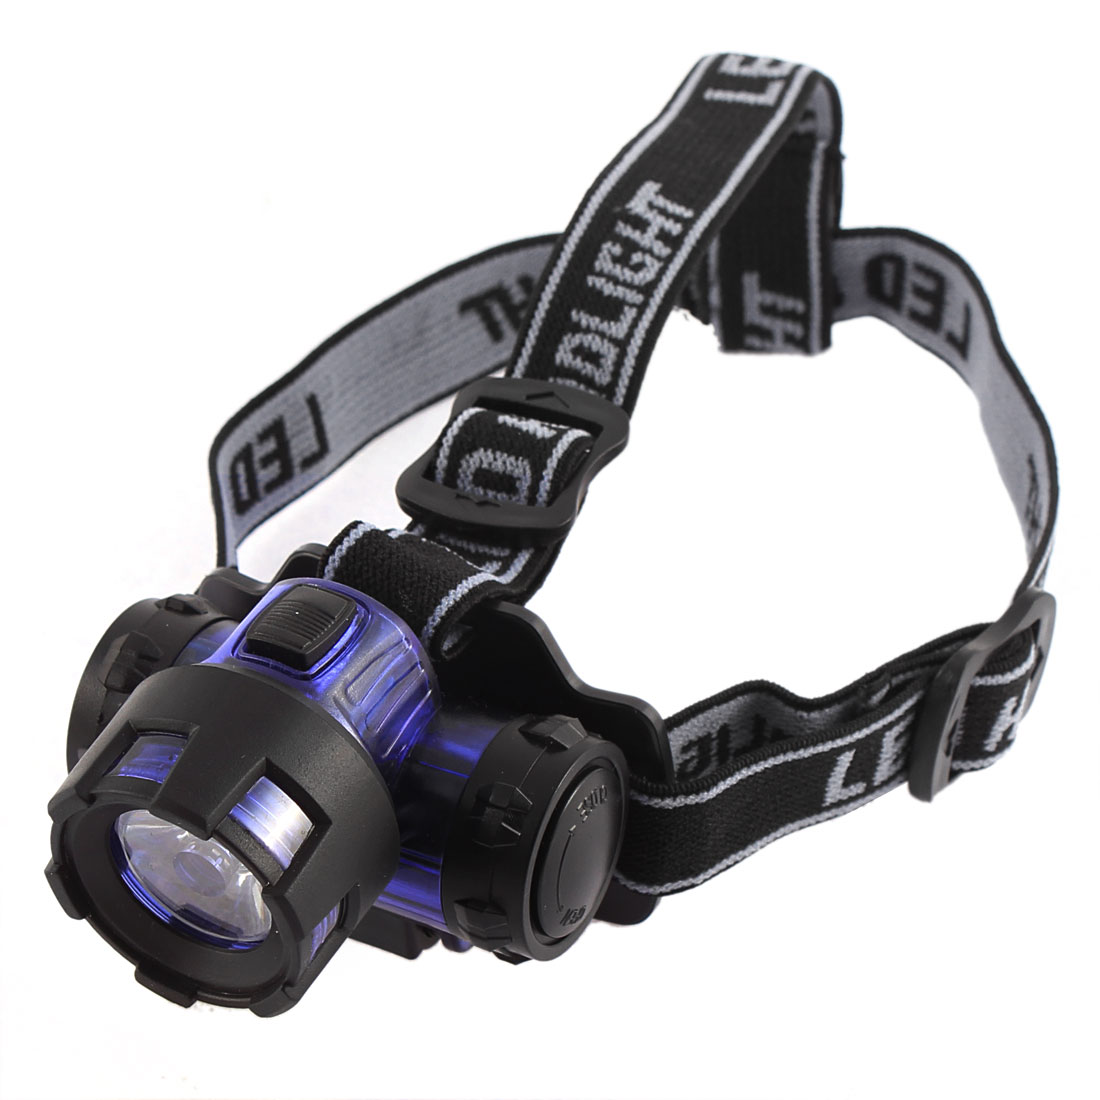 Adjustable Elastic Headstrap Zoom Focus LED Camping Headlight White 3W